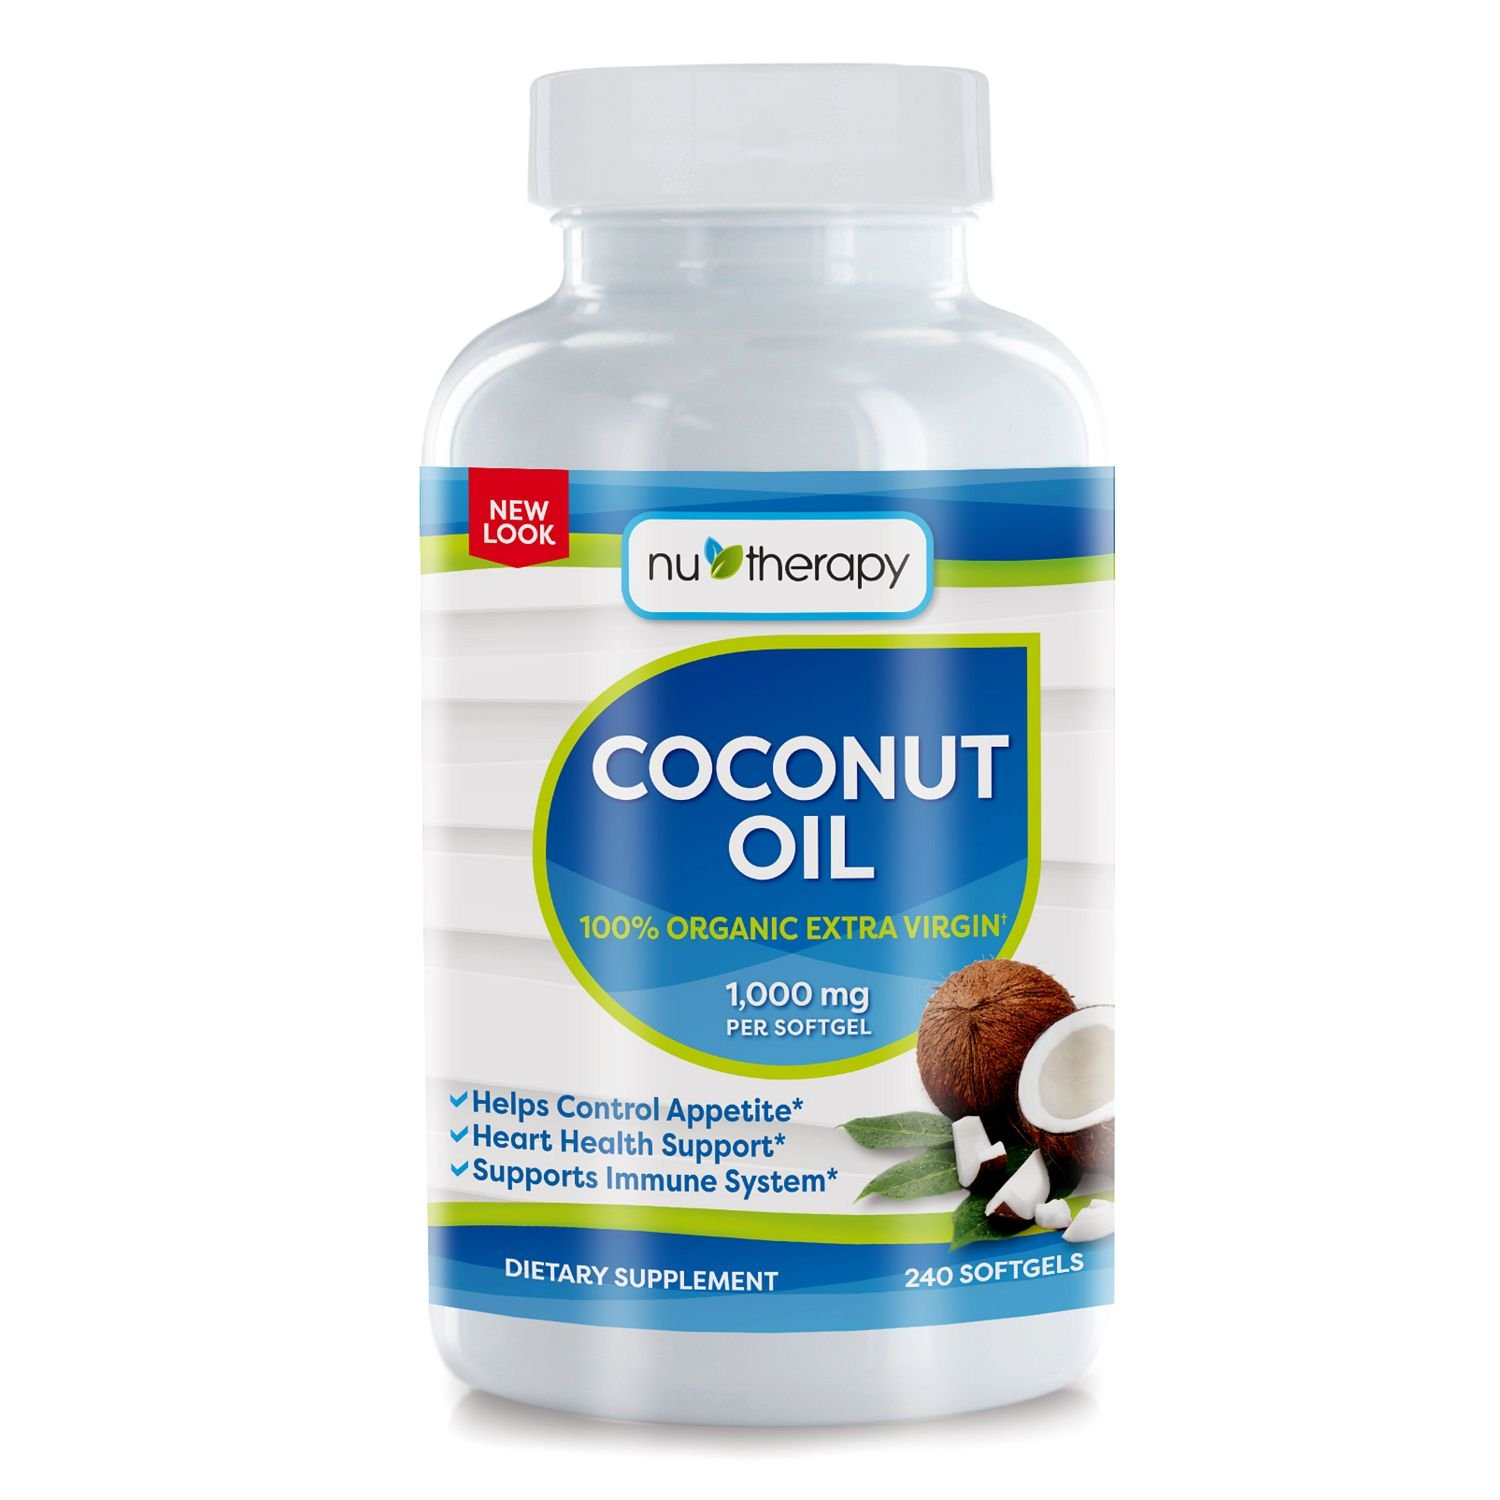 NuTherapy Coconut Oil Dietary Supplement (240 ct.) (pack of 6)